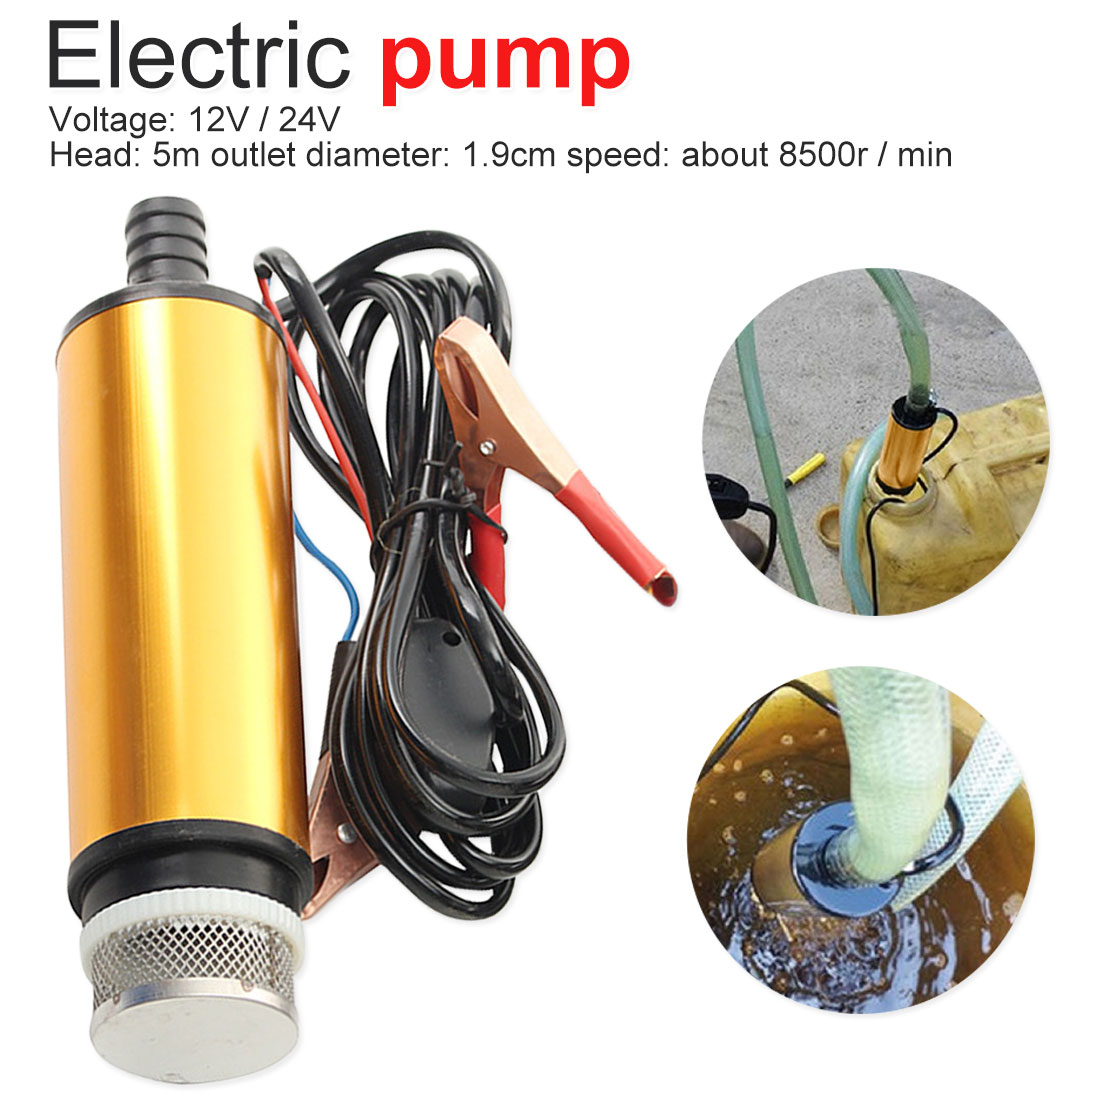 DC 12V Aluminum Alloy Submersible Electric Bilge Pump For Diesel/oil/water/fuel Transfer 12 V Volt 24volt